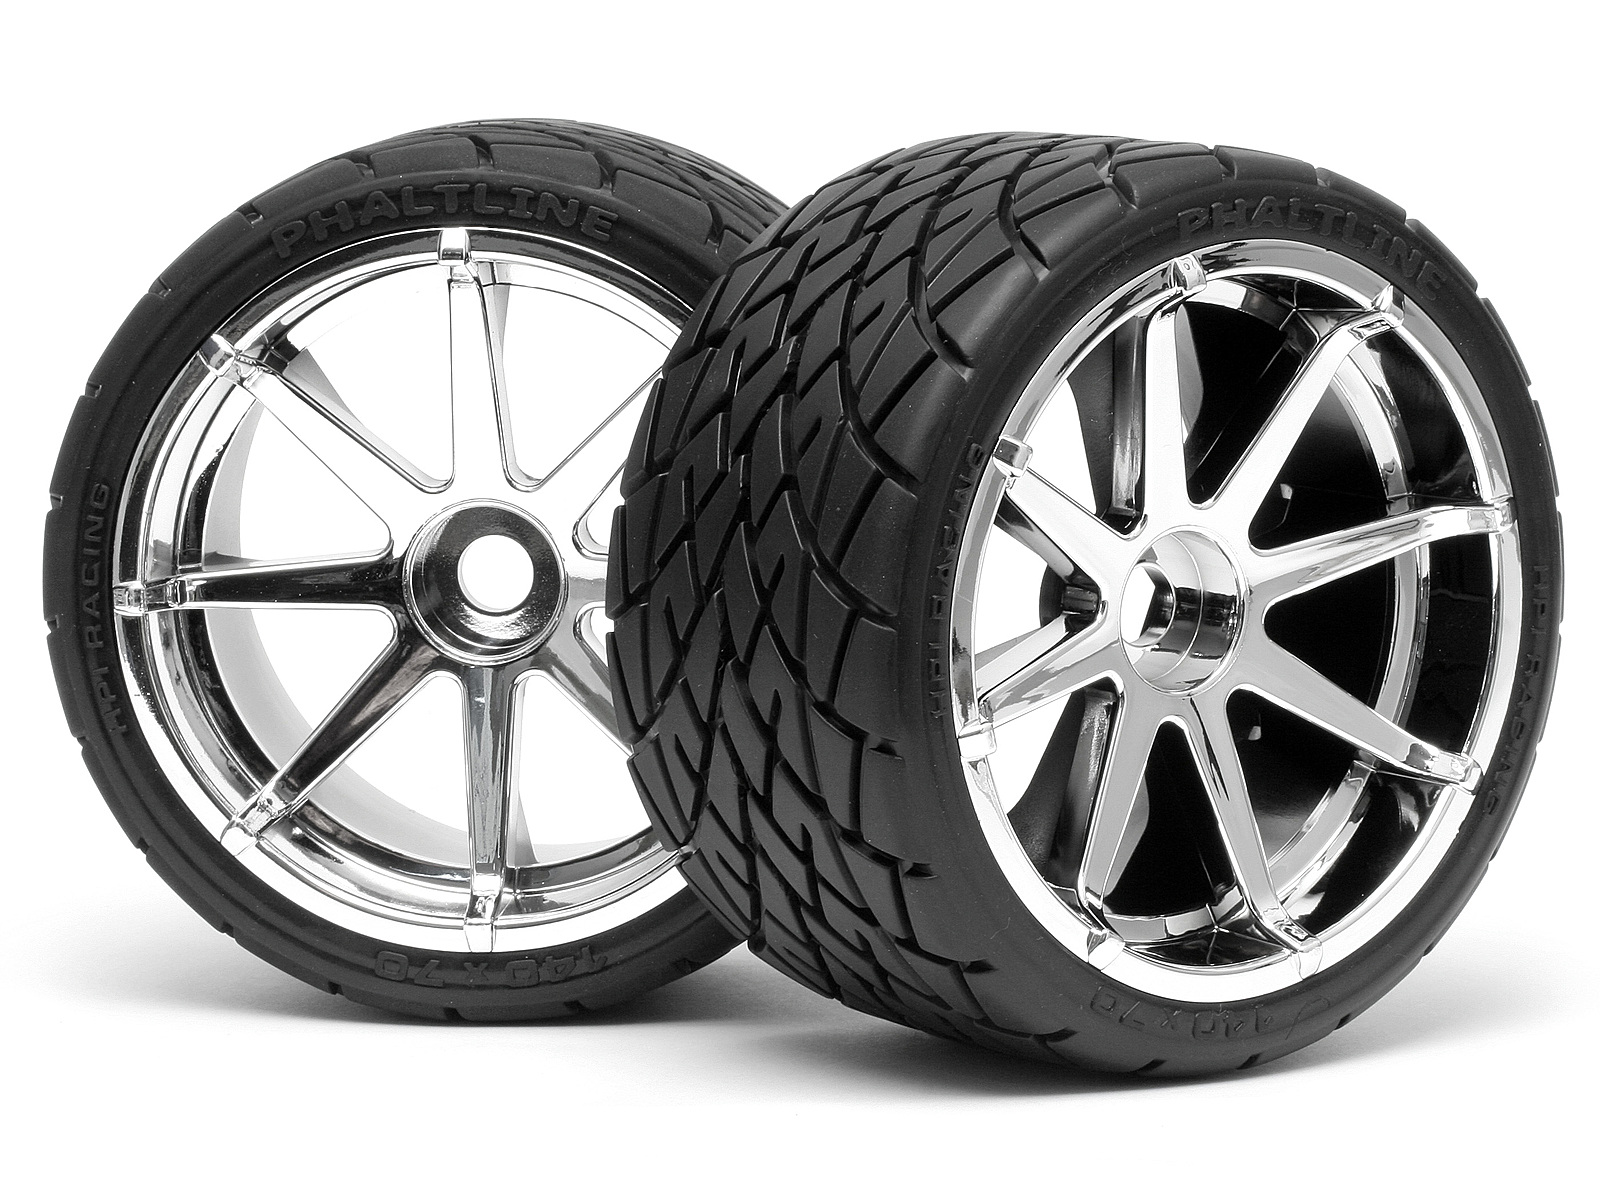 Performance Wheel And Tire - Performance Plus Tire Custom Tires Custom Wheels And